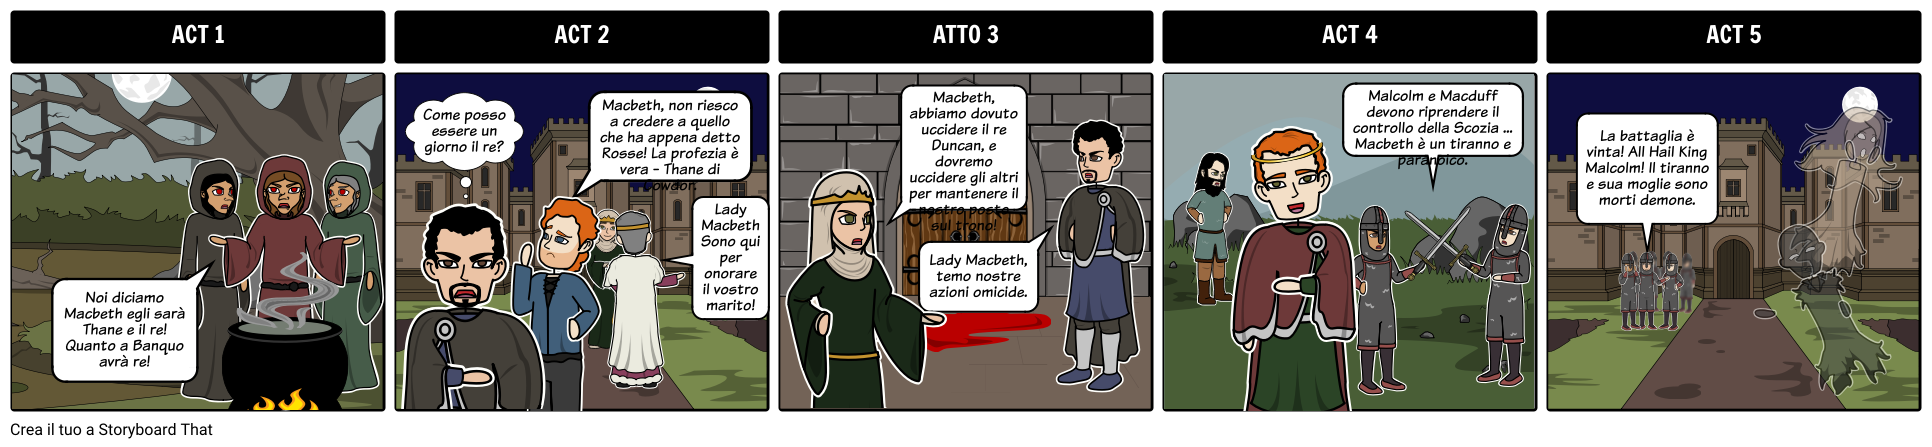 Macbeth 5 Act Struttura Storyboard